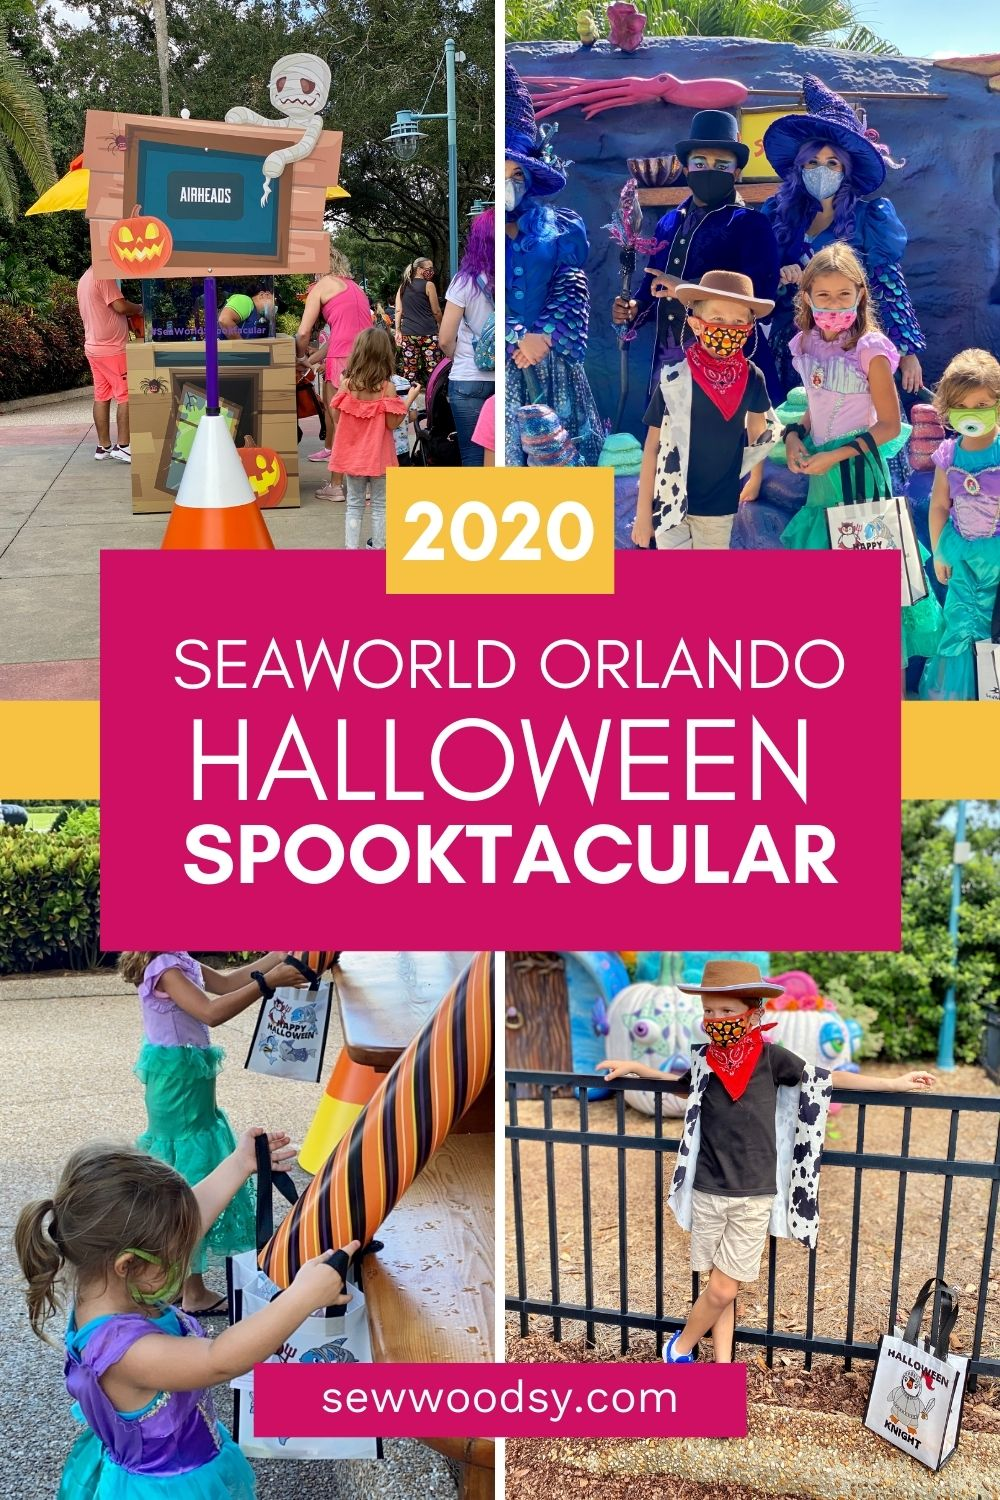 Four photos from SeaWorld Orlando Spooktacular wtih text on image for Pinterest.